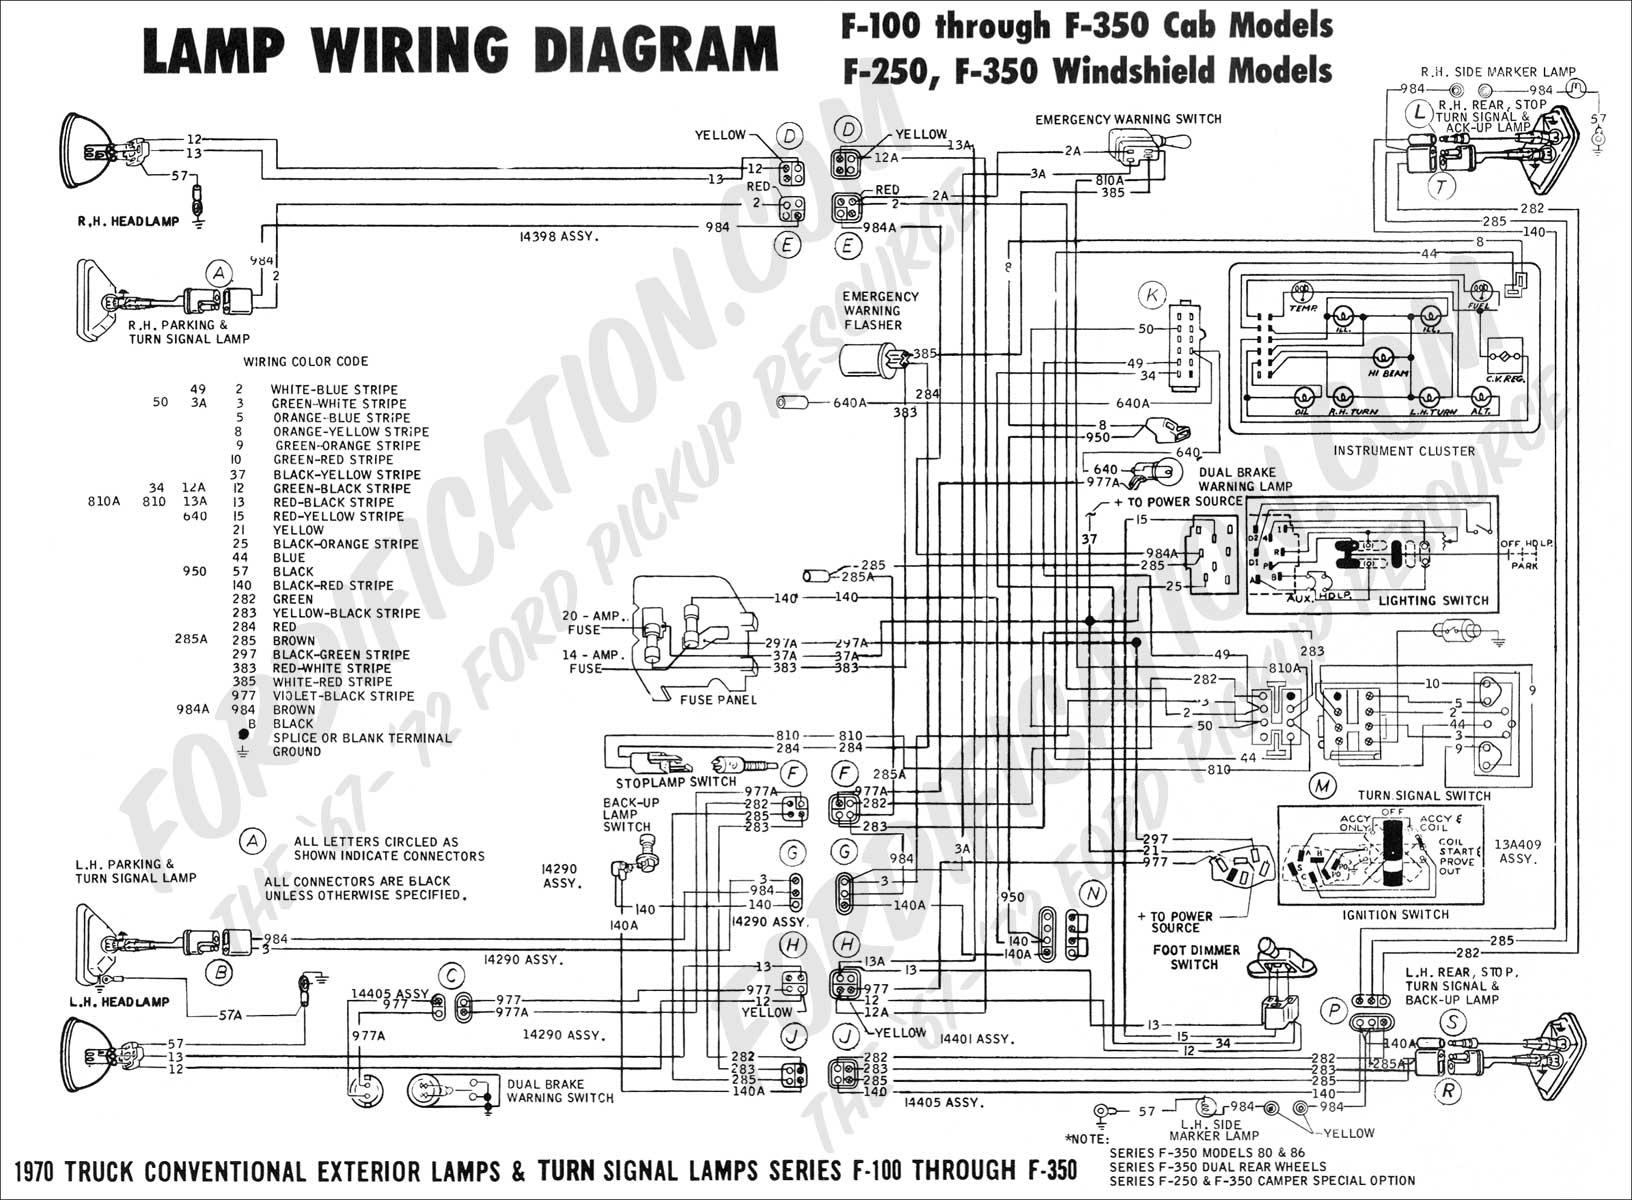 wiring diagram_70ext lights01?resized665%2C489 1994 peterbilt 379 wiring diagram efcaviation com 1970 ford f100 turn signal wiring diagram at mifinder.co